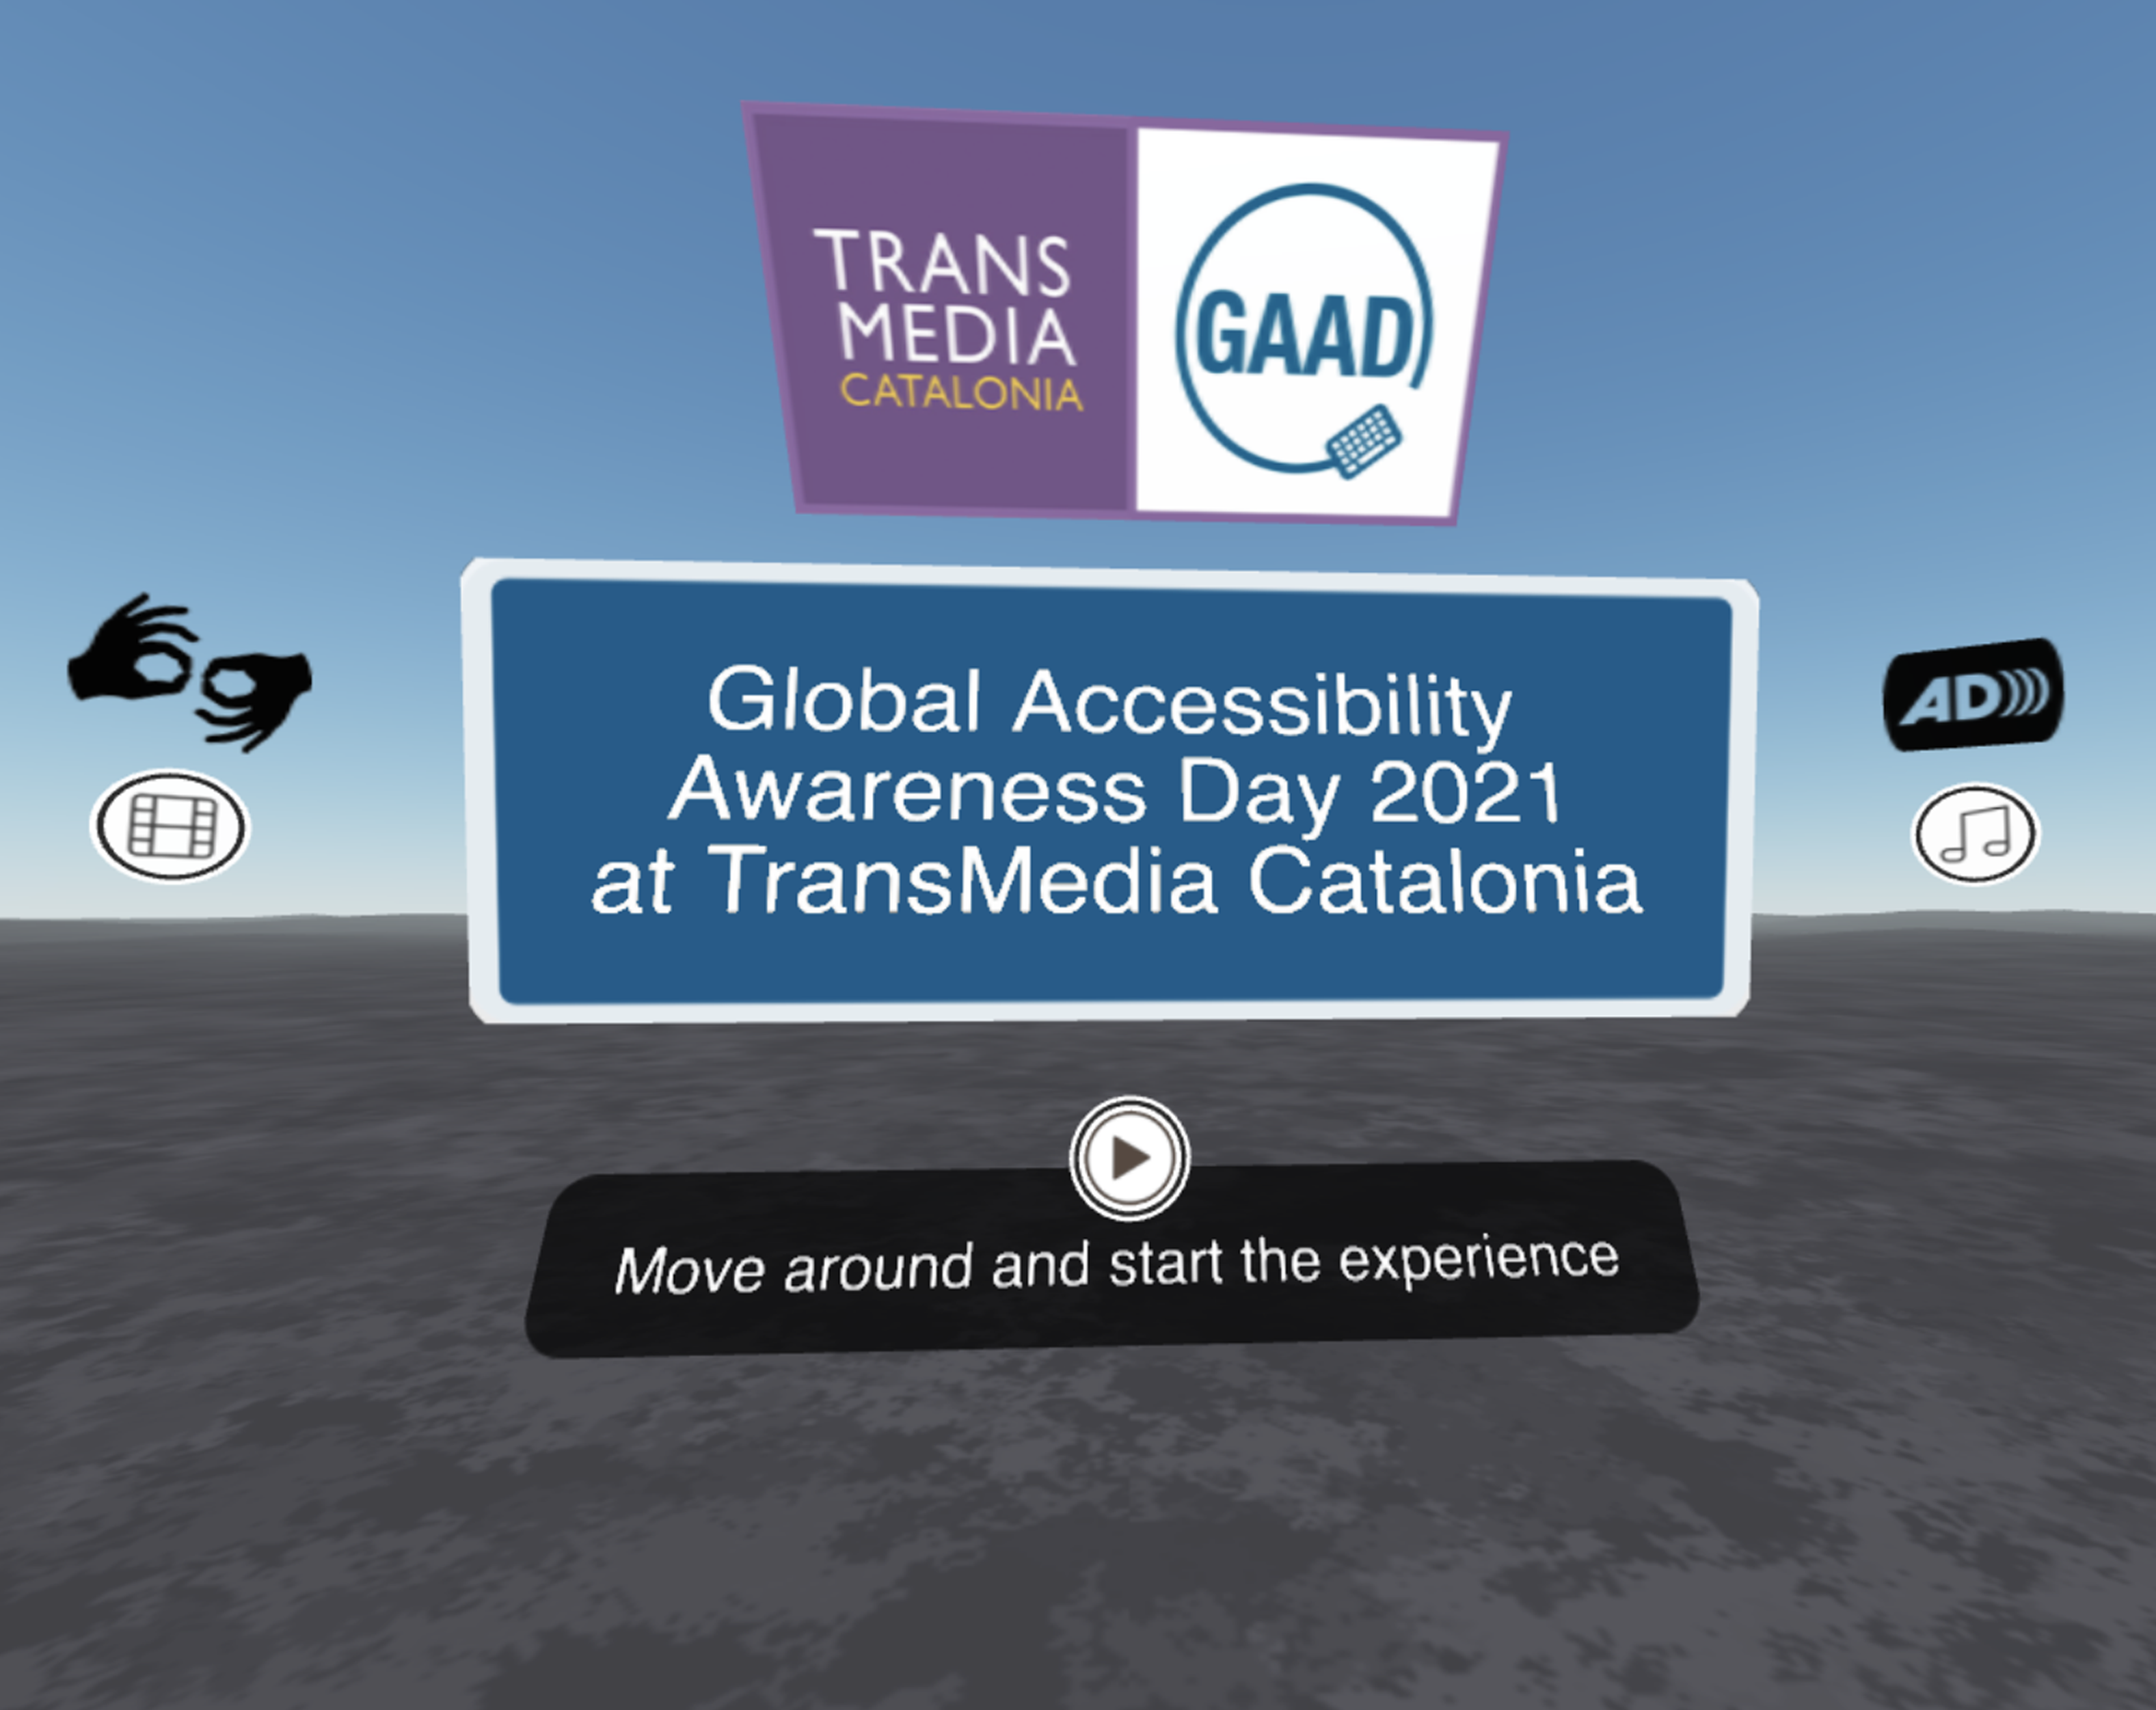 StartScreen of GAAD 360 experience with icons indicating where to open sign language video and subtitles